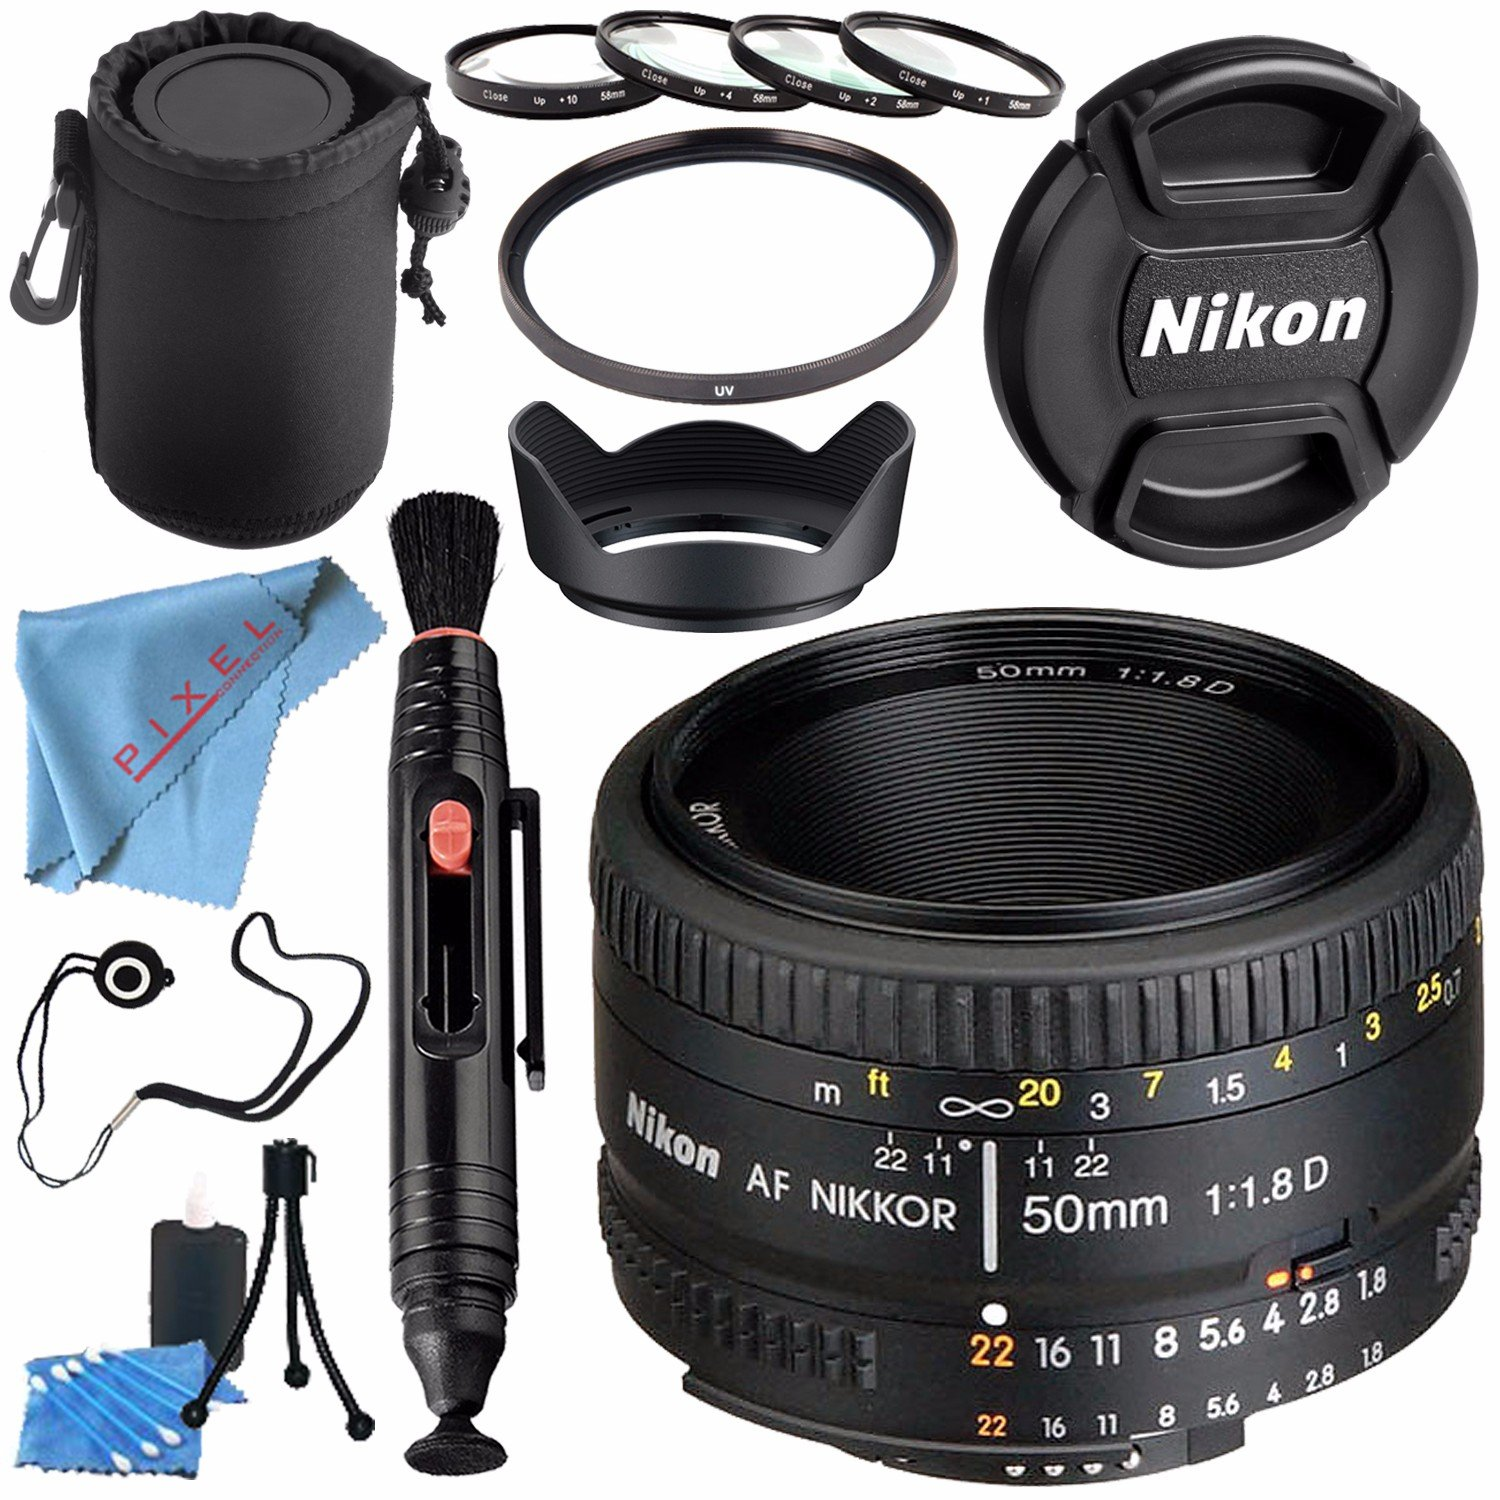 Buy 52mm Standard Metal Lens Hood Telephoto Screw In Cap Canon Nikon Af Nikkor 50mm F 18d 2137 Uv Filter Macro Close Up Kit Tulip Pen Cleaner Fibercloth Capkeeper